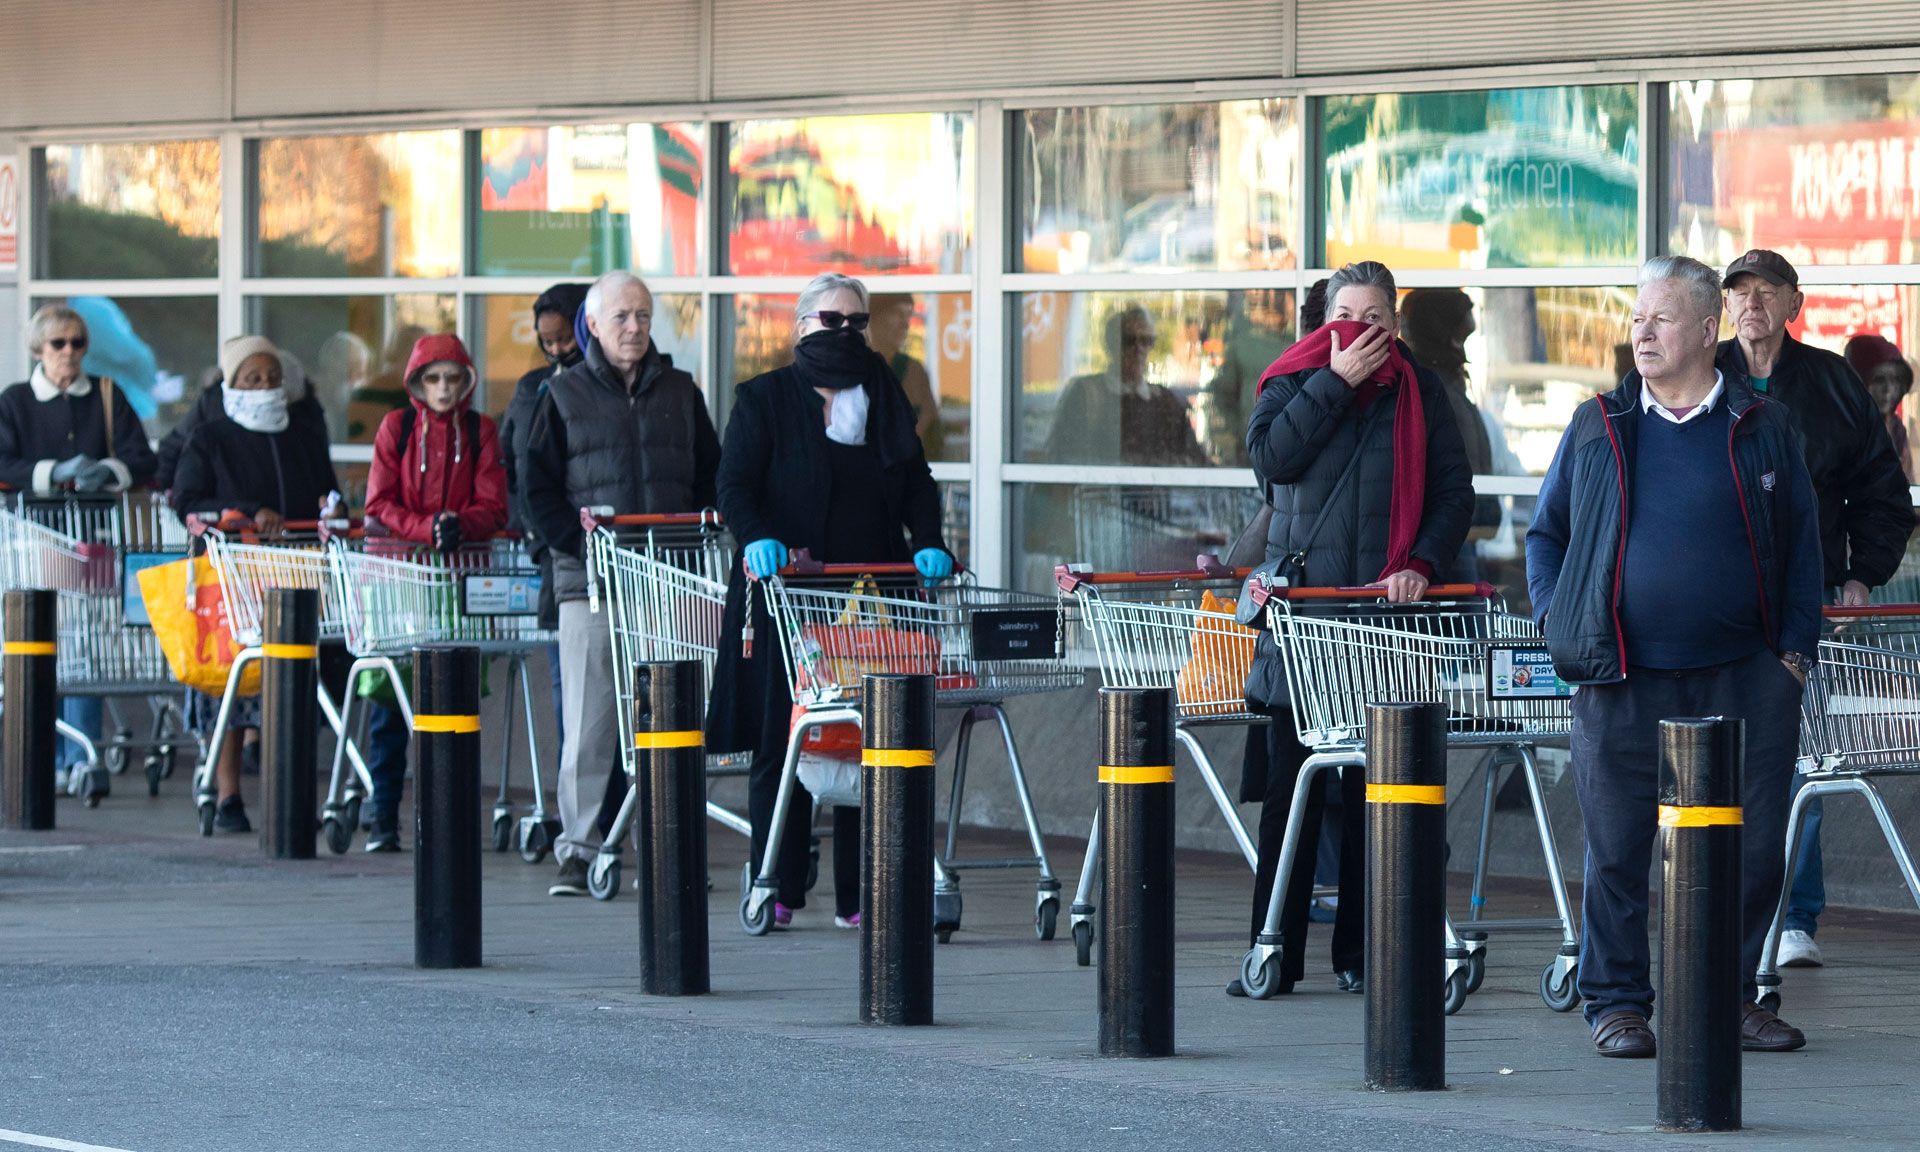 shoppers queuing with trolleys